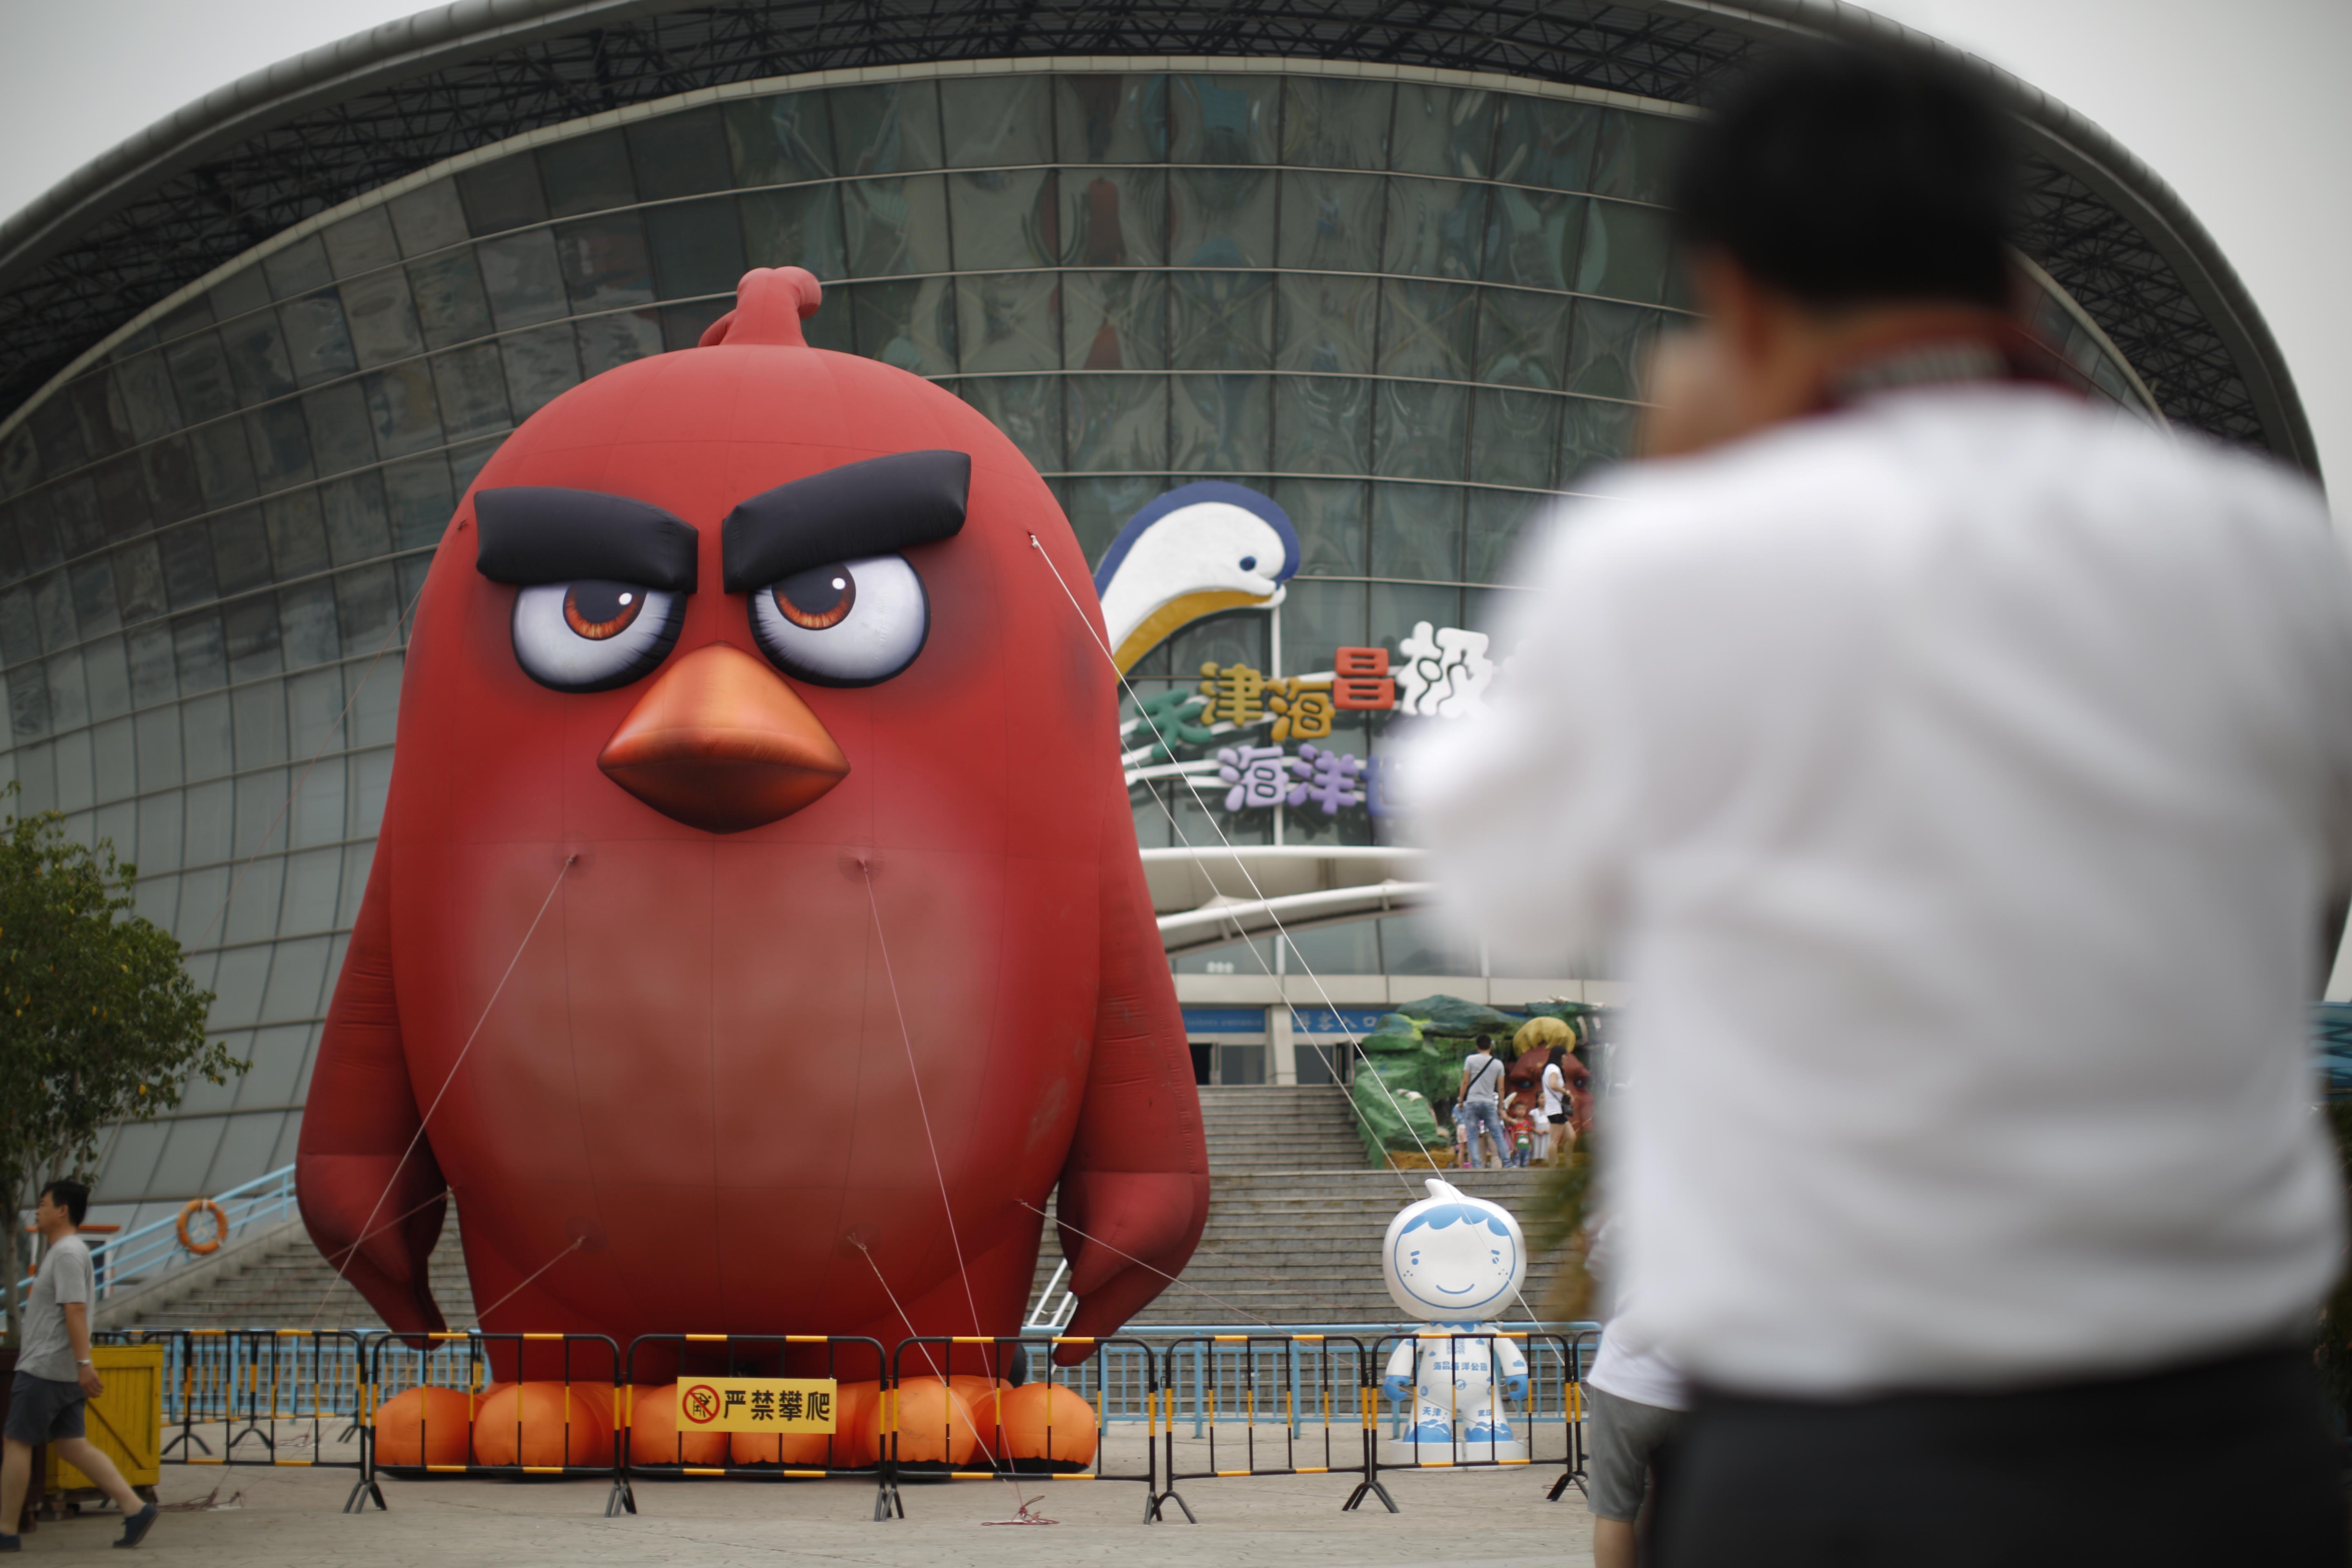 An <em>Angry Birds</em> theme park opened in Tianjin, China in 2016.